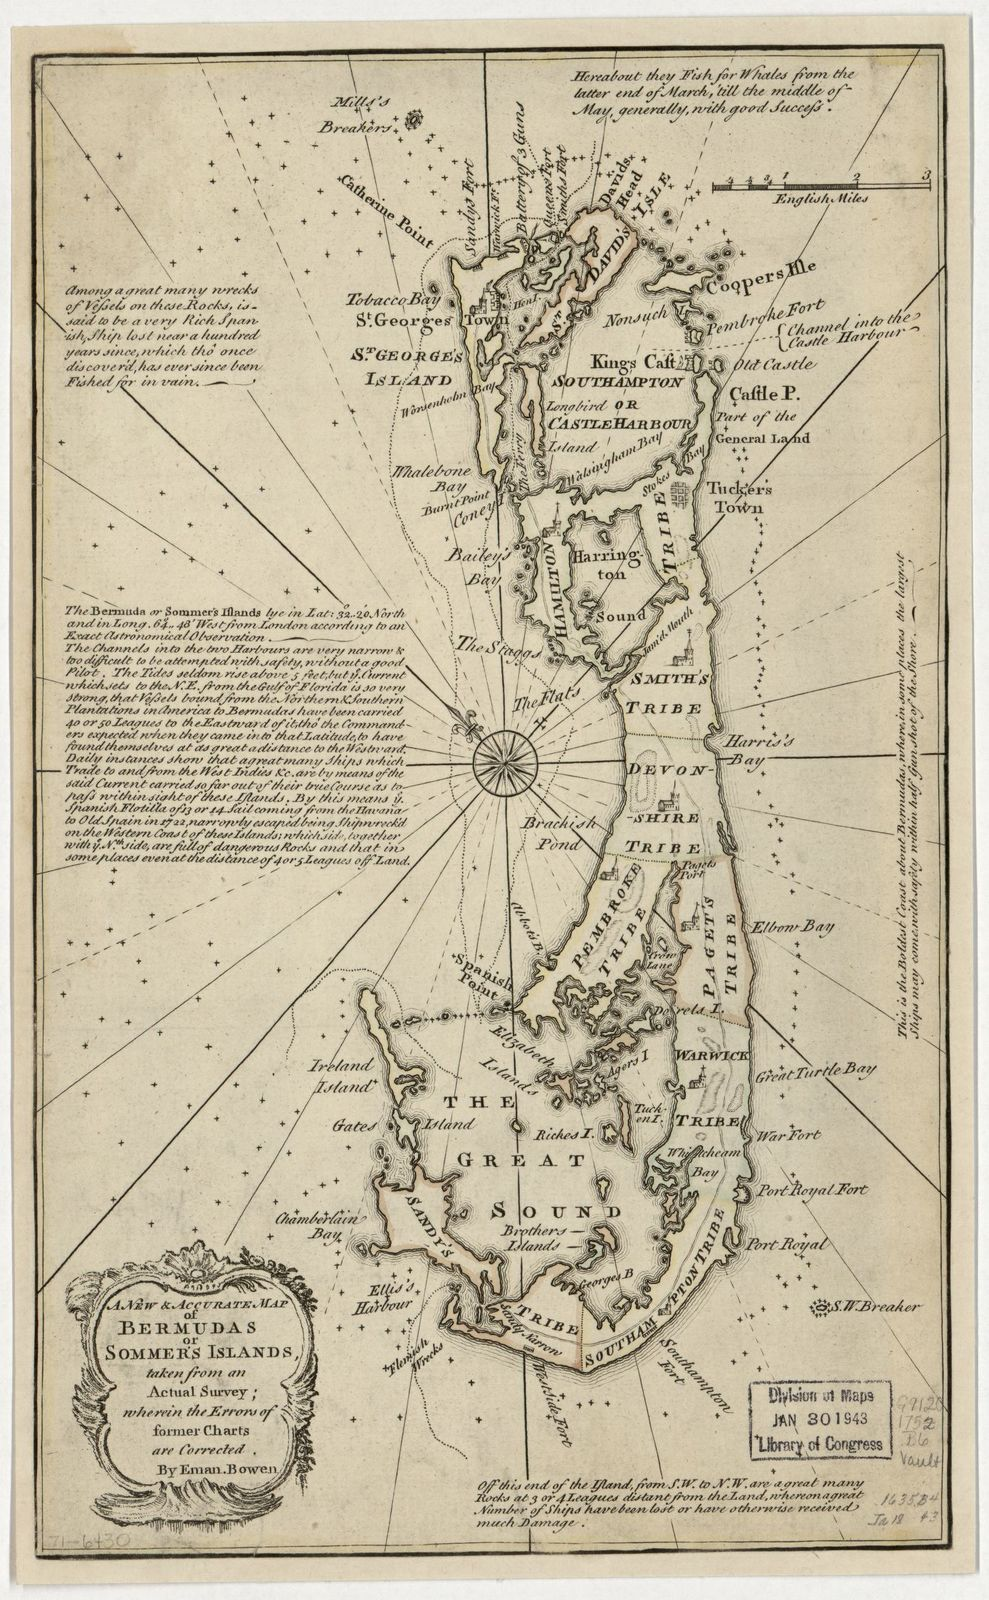 A new & accurate map of Bermudas or Sommer's Islands, taken from an actual survey; wherein the errors of former charts are corrected.